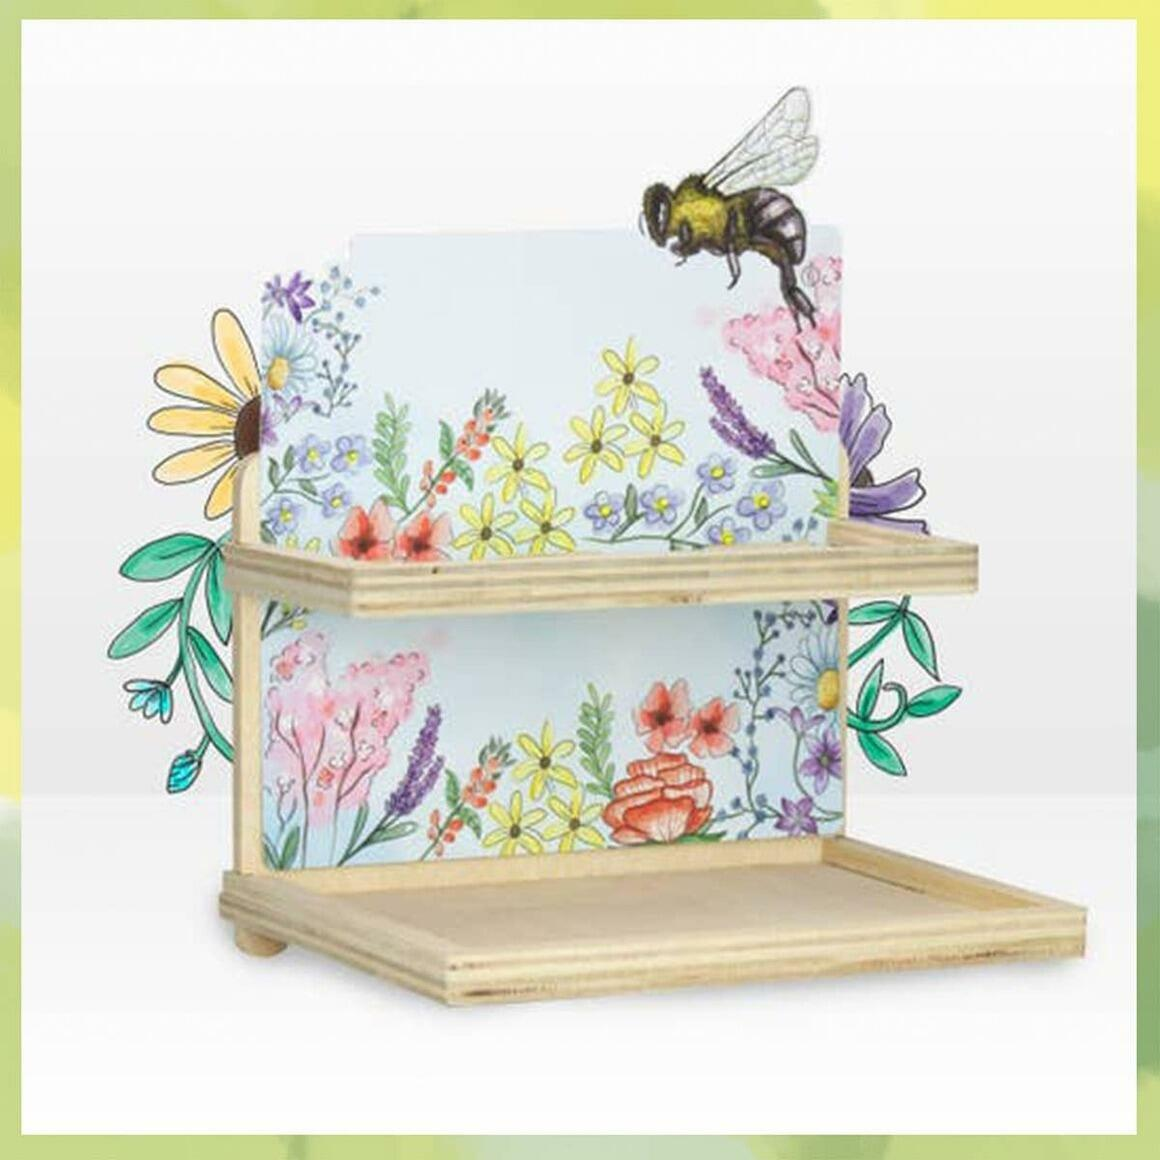 Medium Wooden Display - does not include product | Trada Marketplace